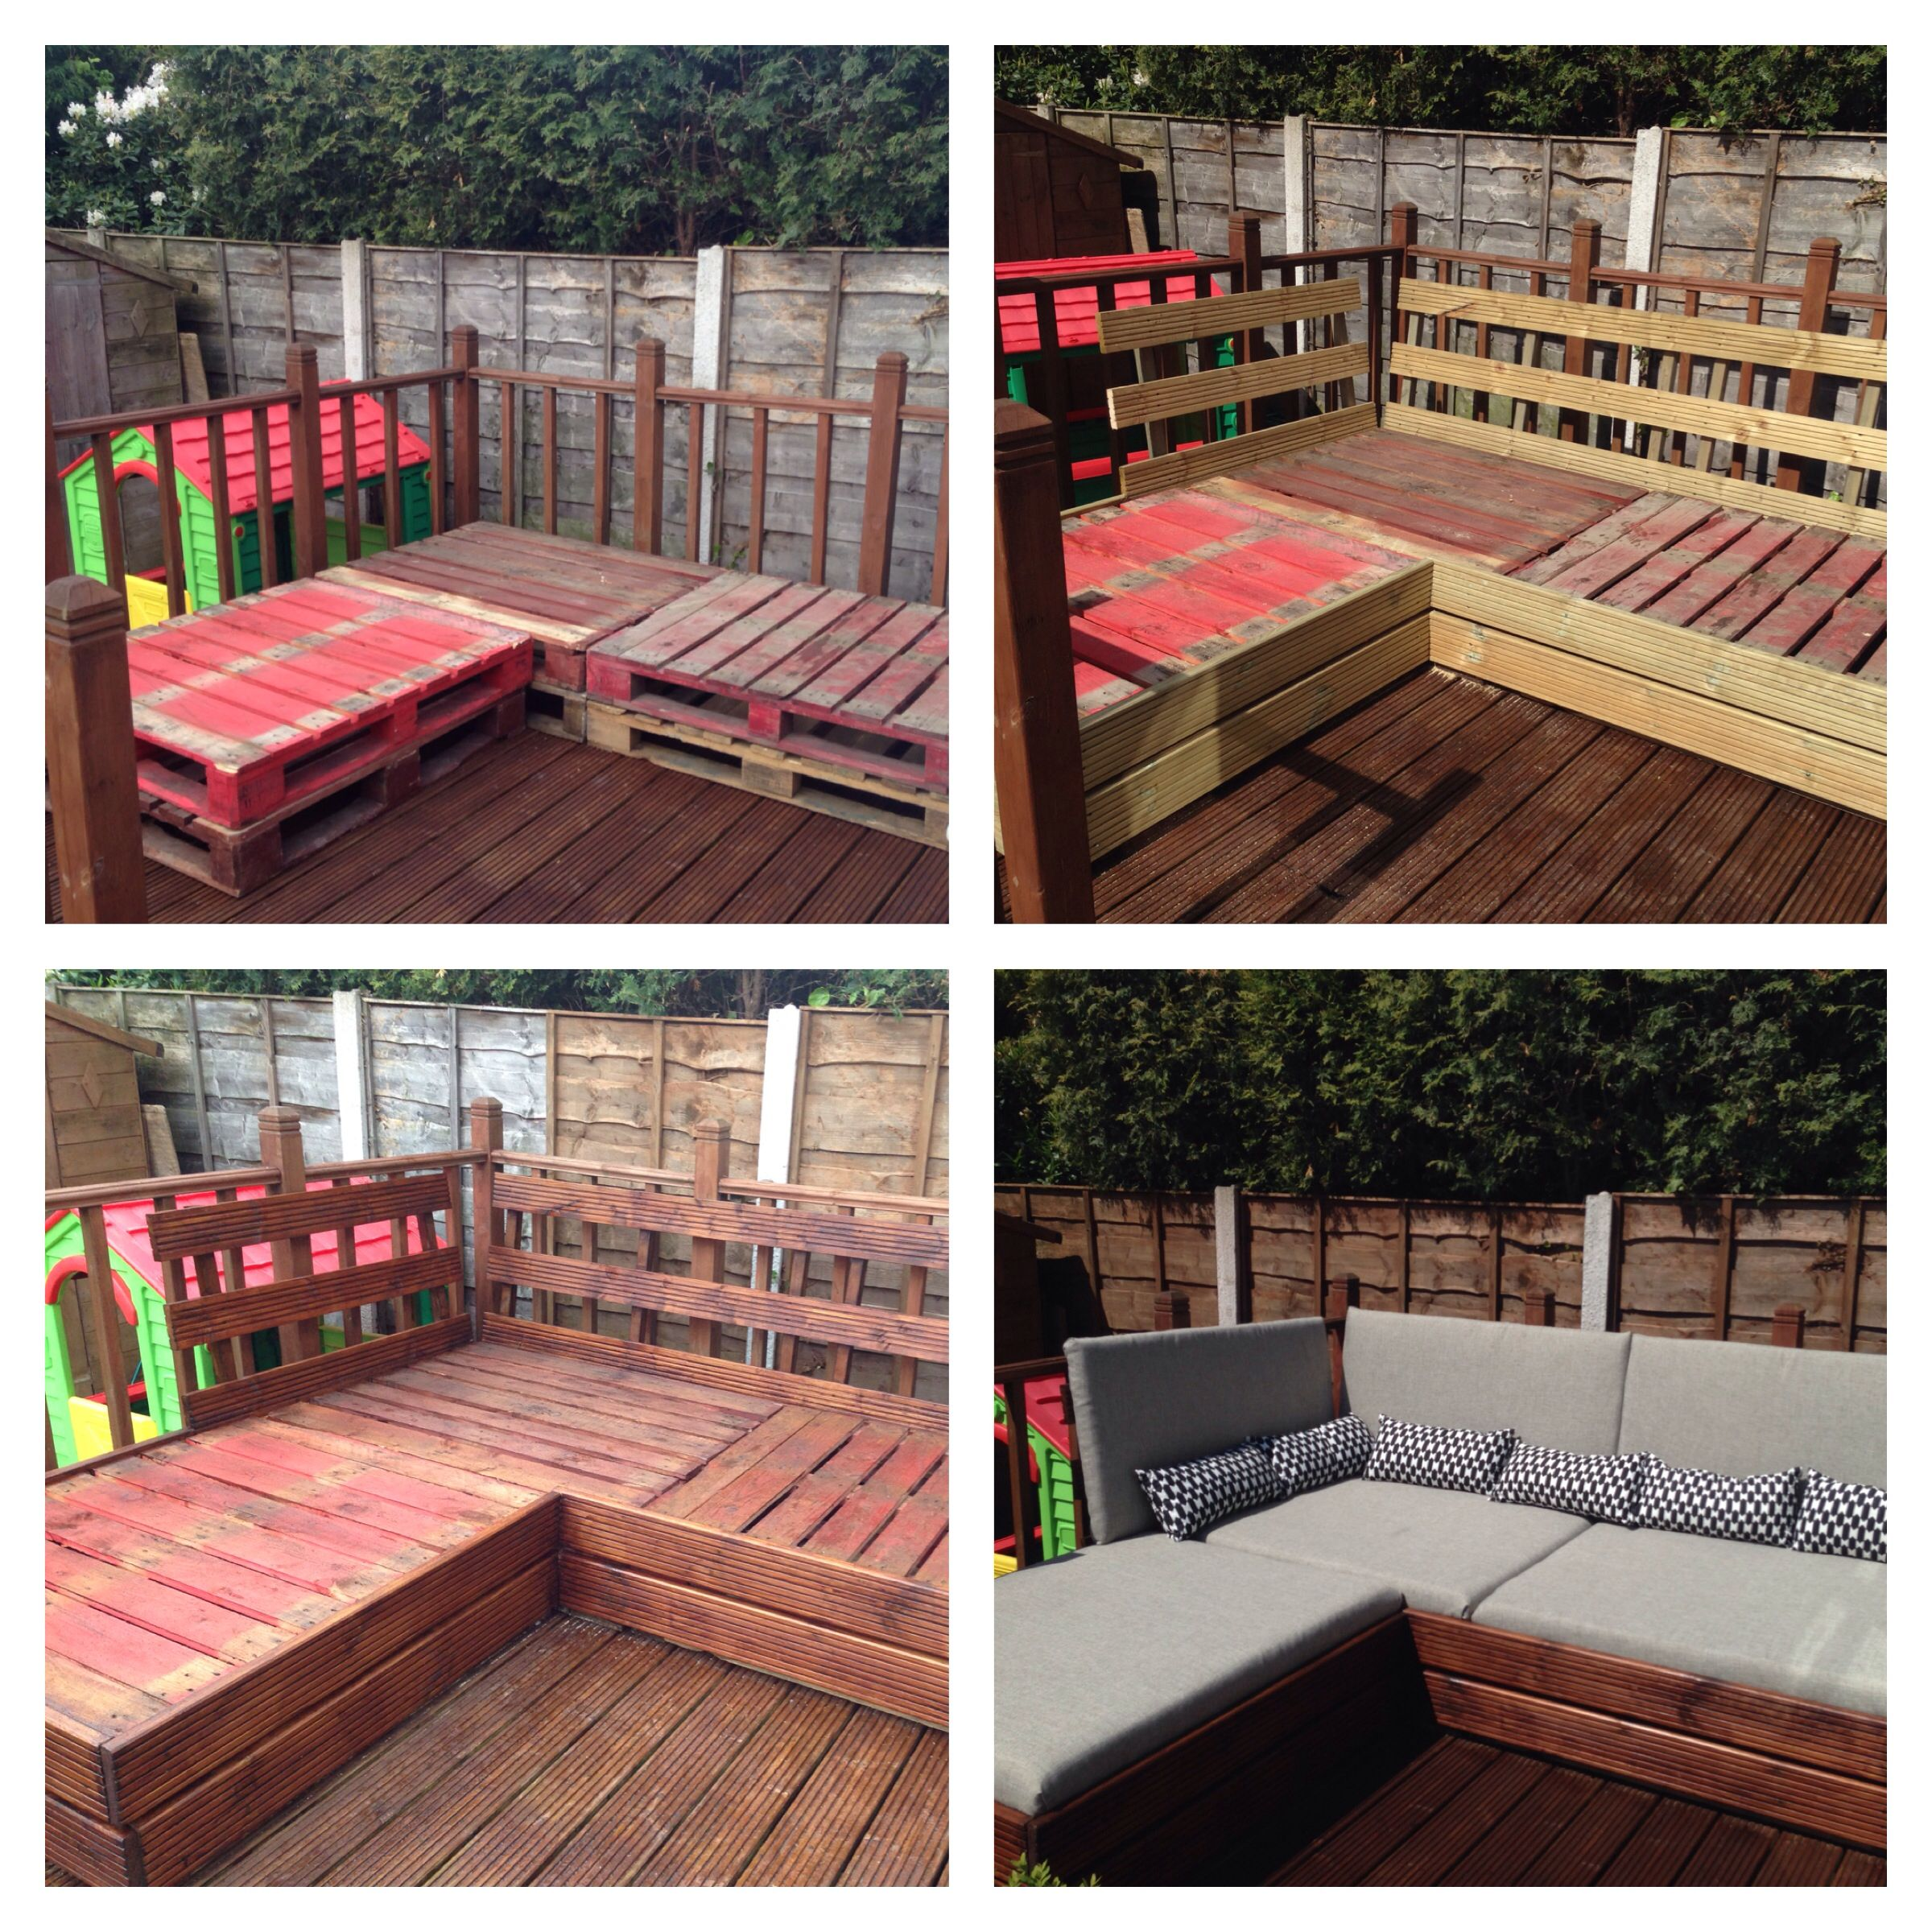 Patio furniture made from pallets and decking boards